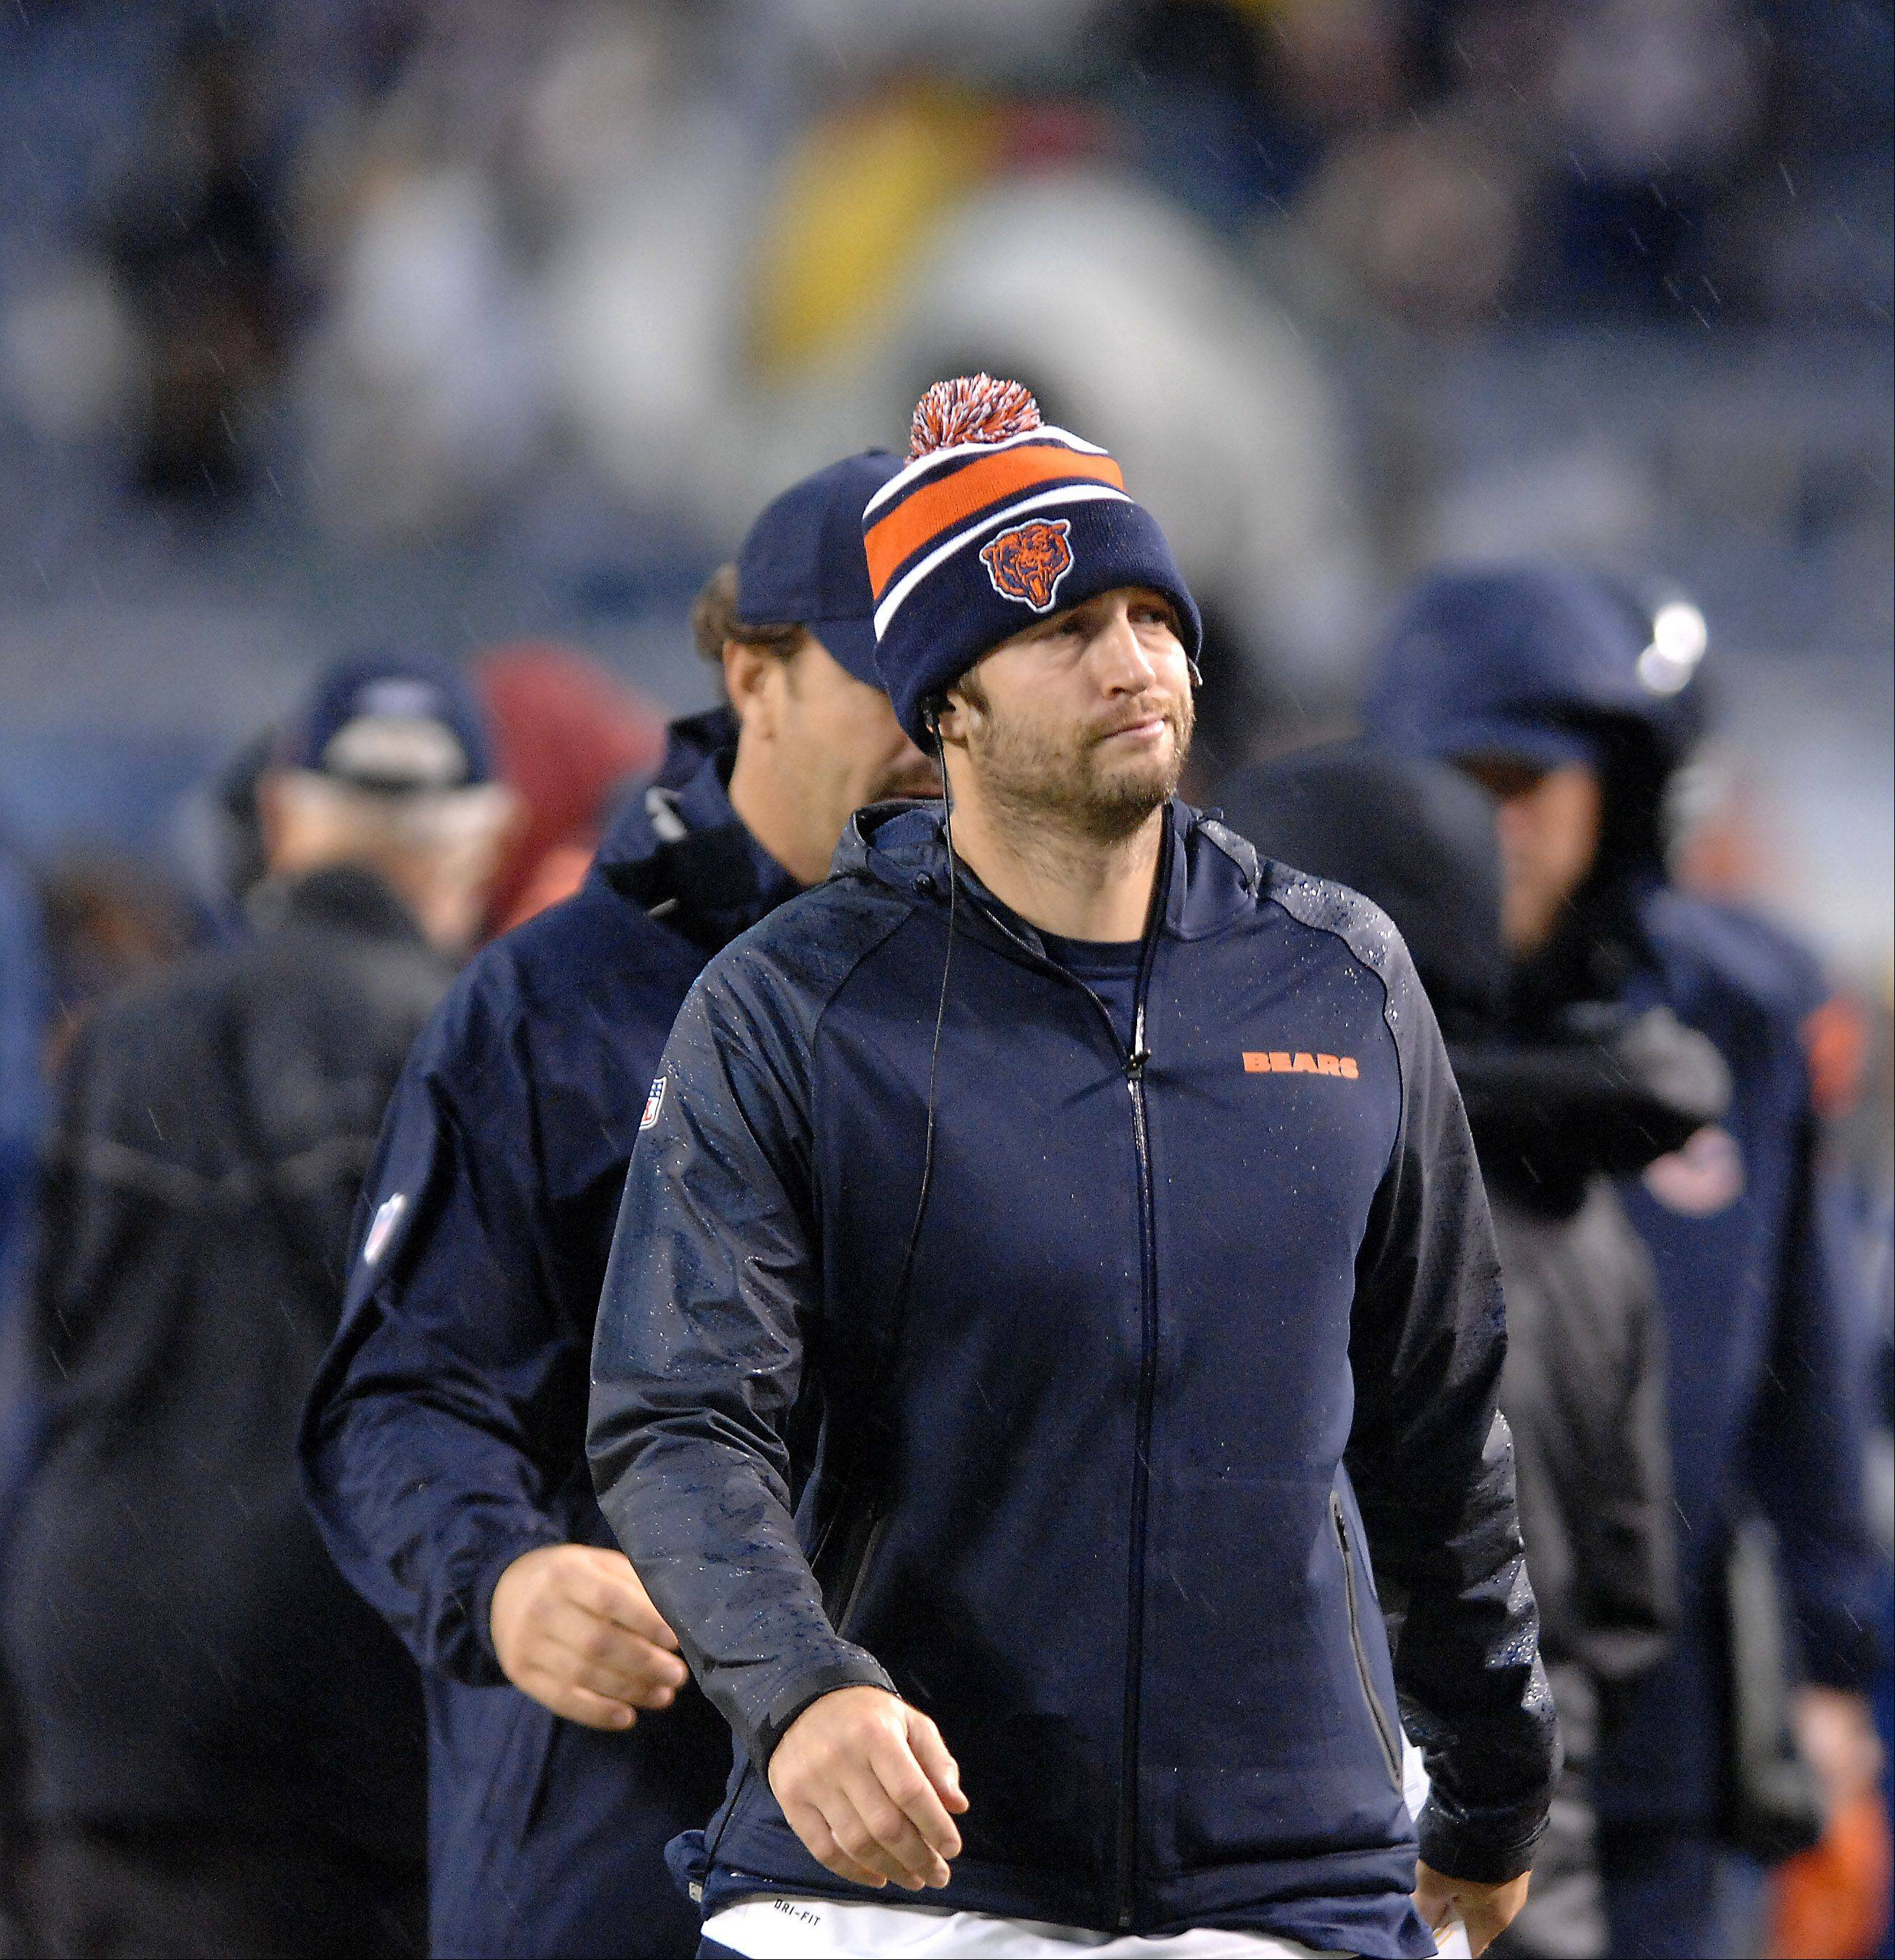 Quarterback Jay Cutler is expected to draw interest from several NFL teams, but the Bears have to determine whether to move forward with him first.